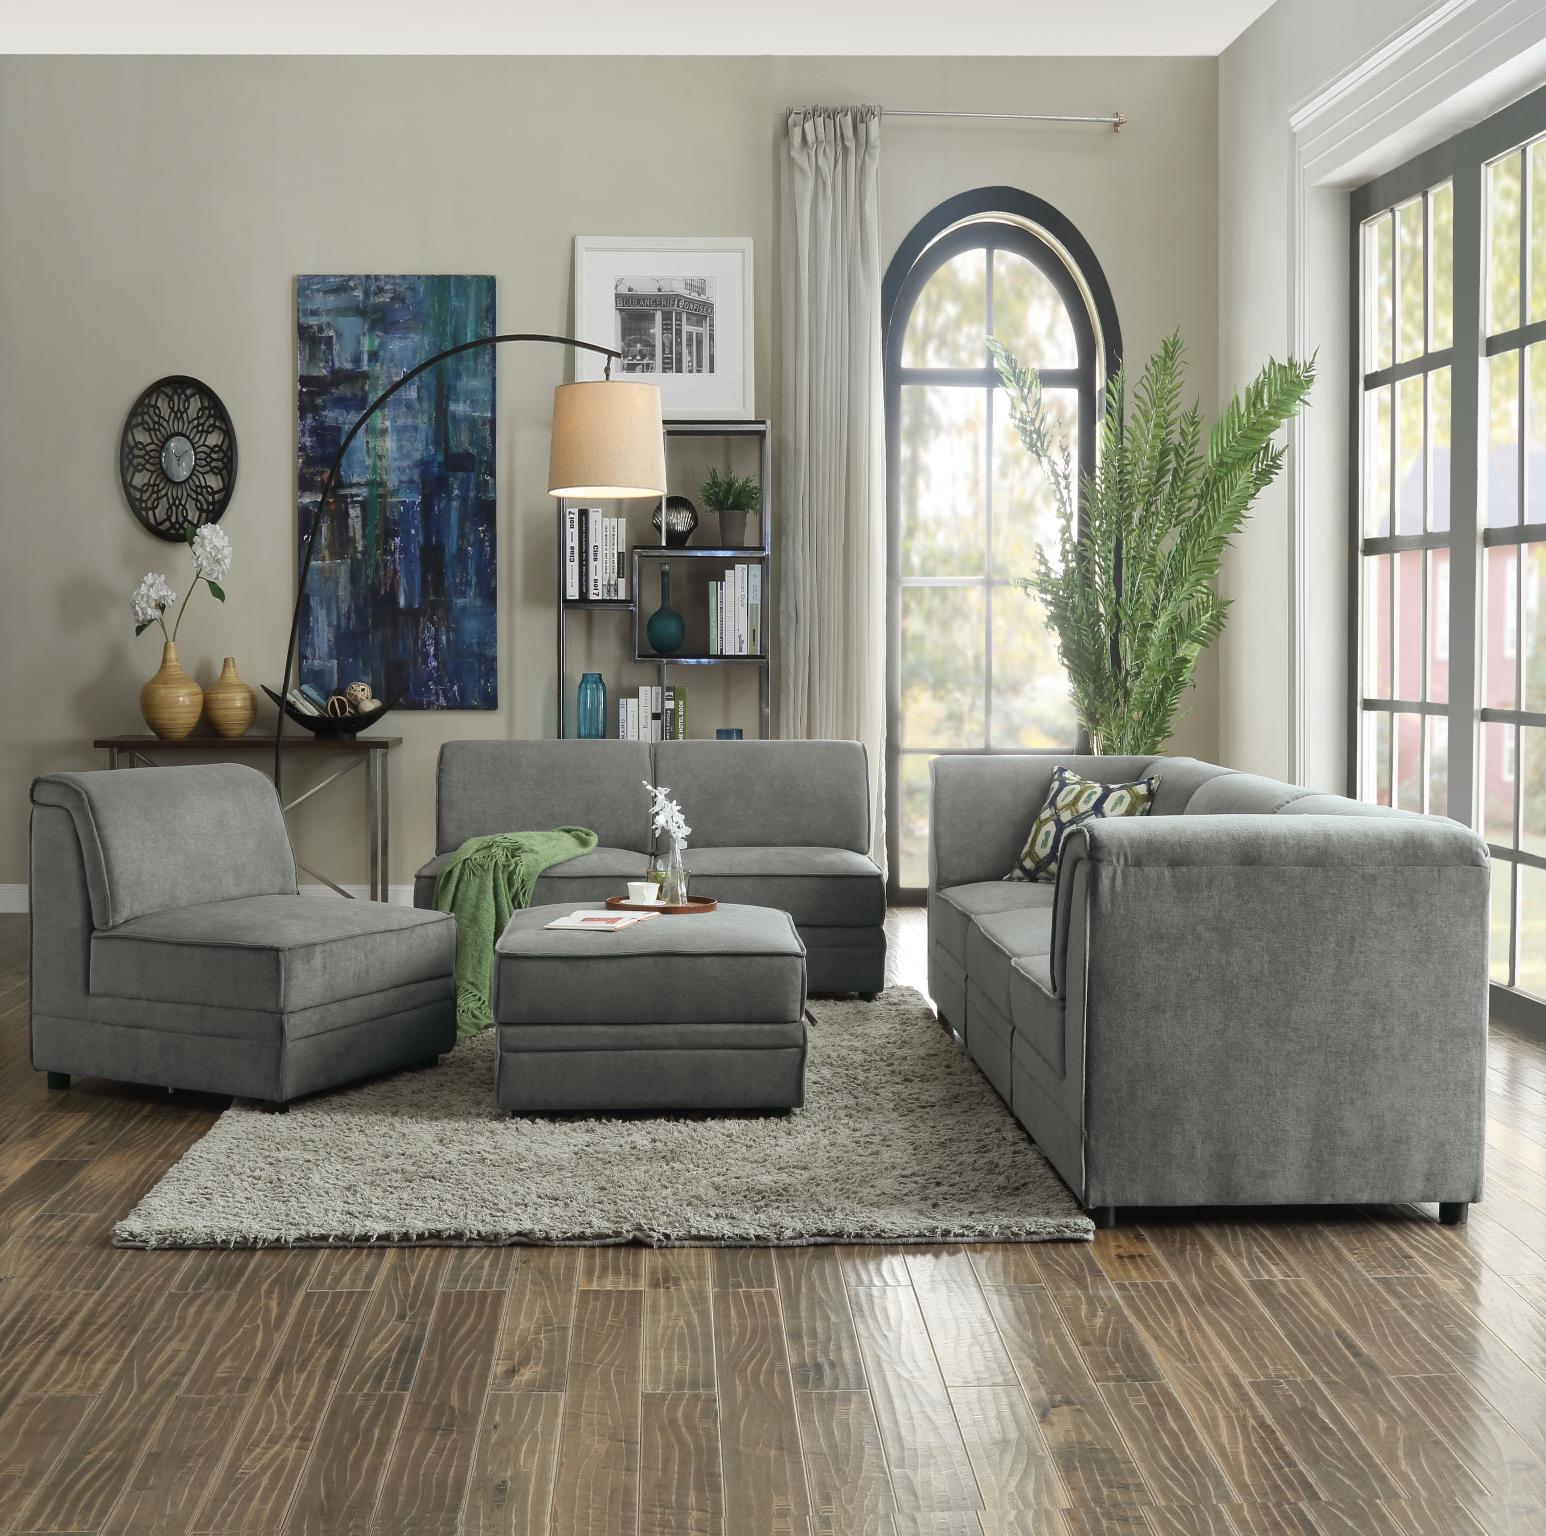 Complete Sofa Set w/ 4 Armless Chairs, 2 Corners, and 1 Ottoman